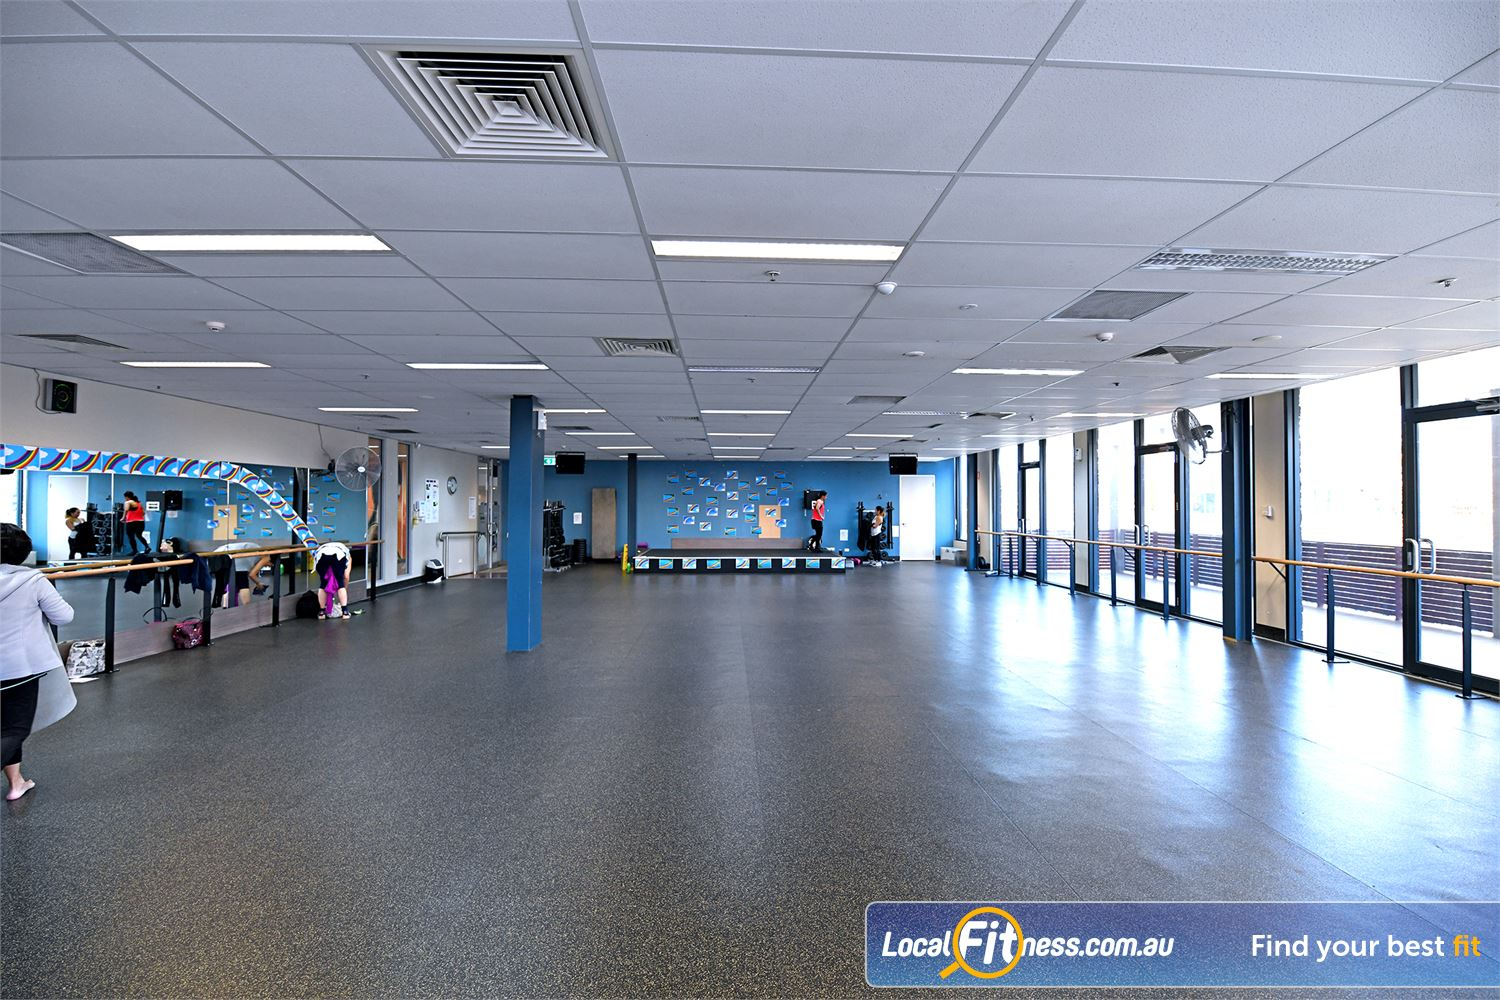 Goodlife Health Clubs Point Cook The dedicated Point Cook group fitness studio.